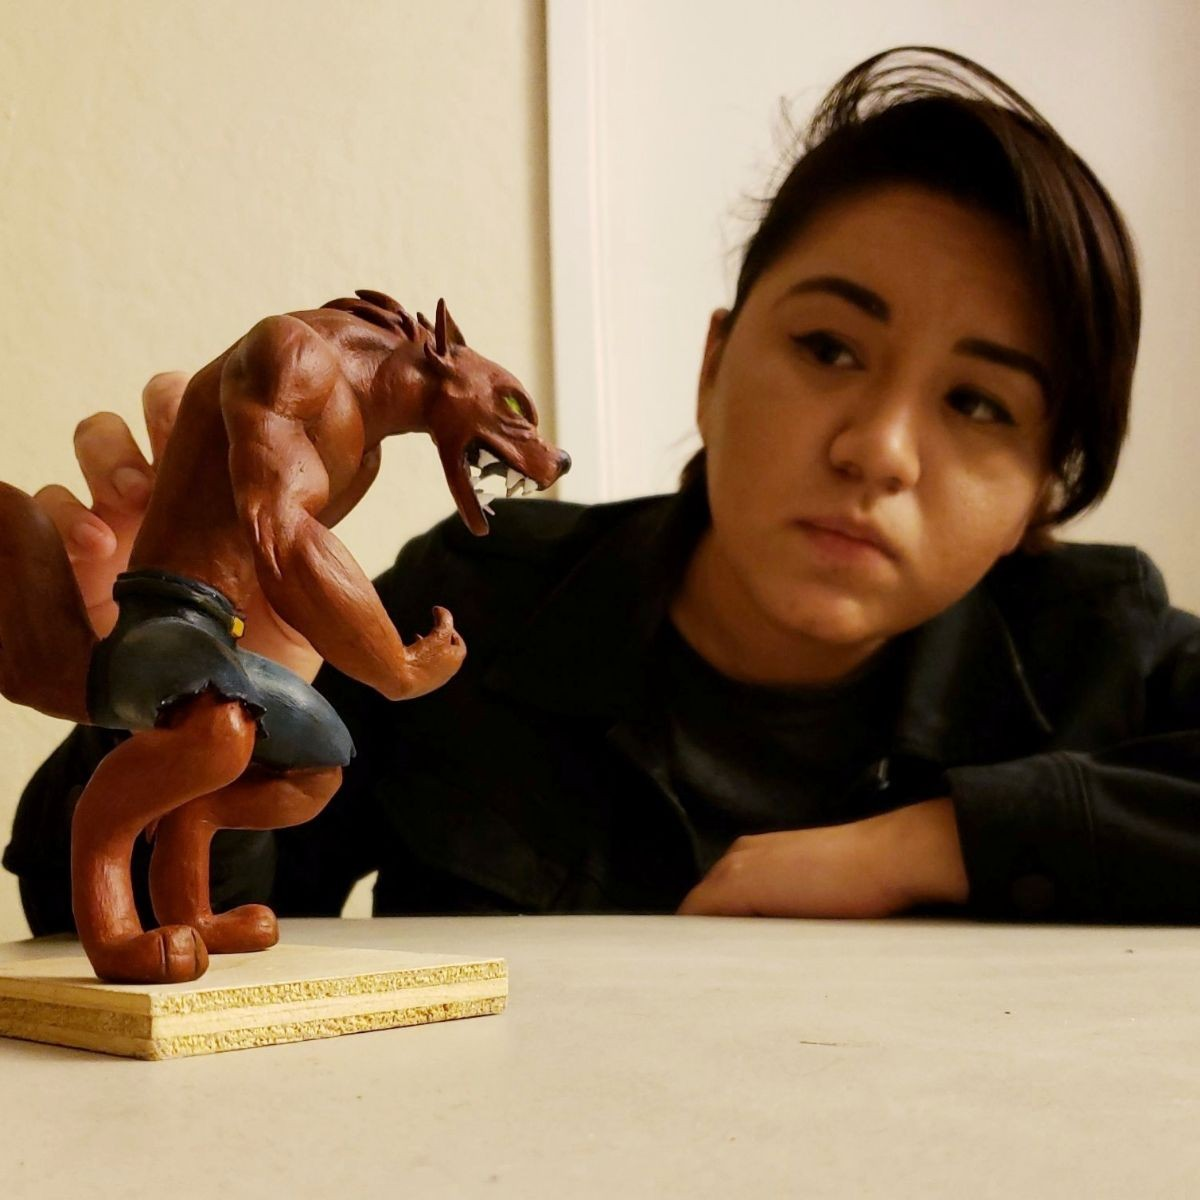 Image of Joanna Gonzales show casing her art piece/figure